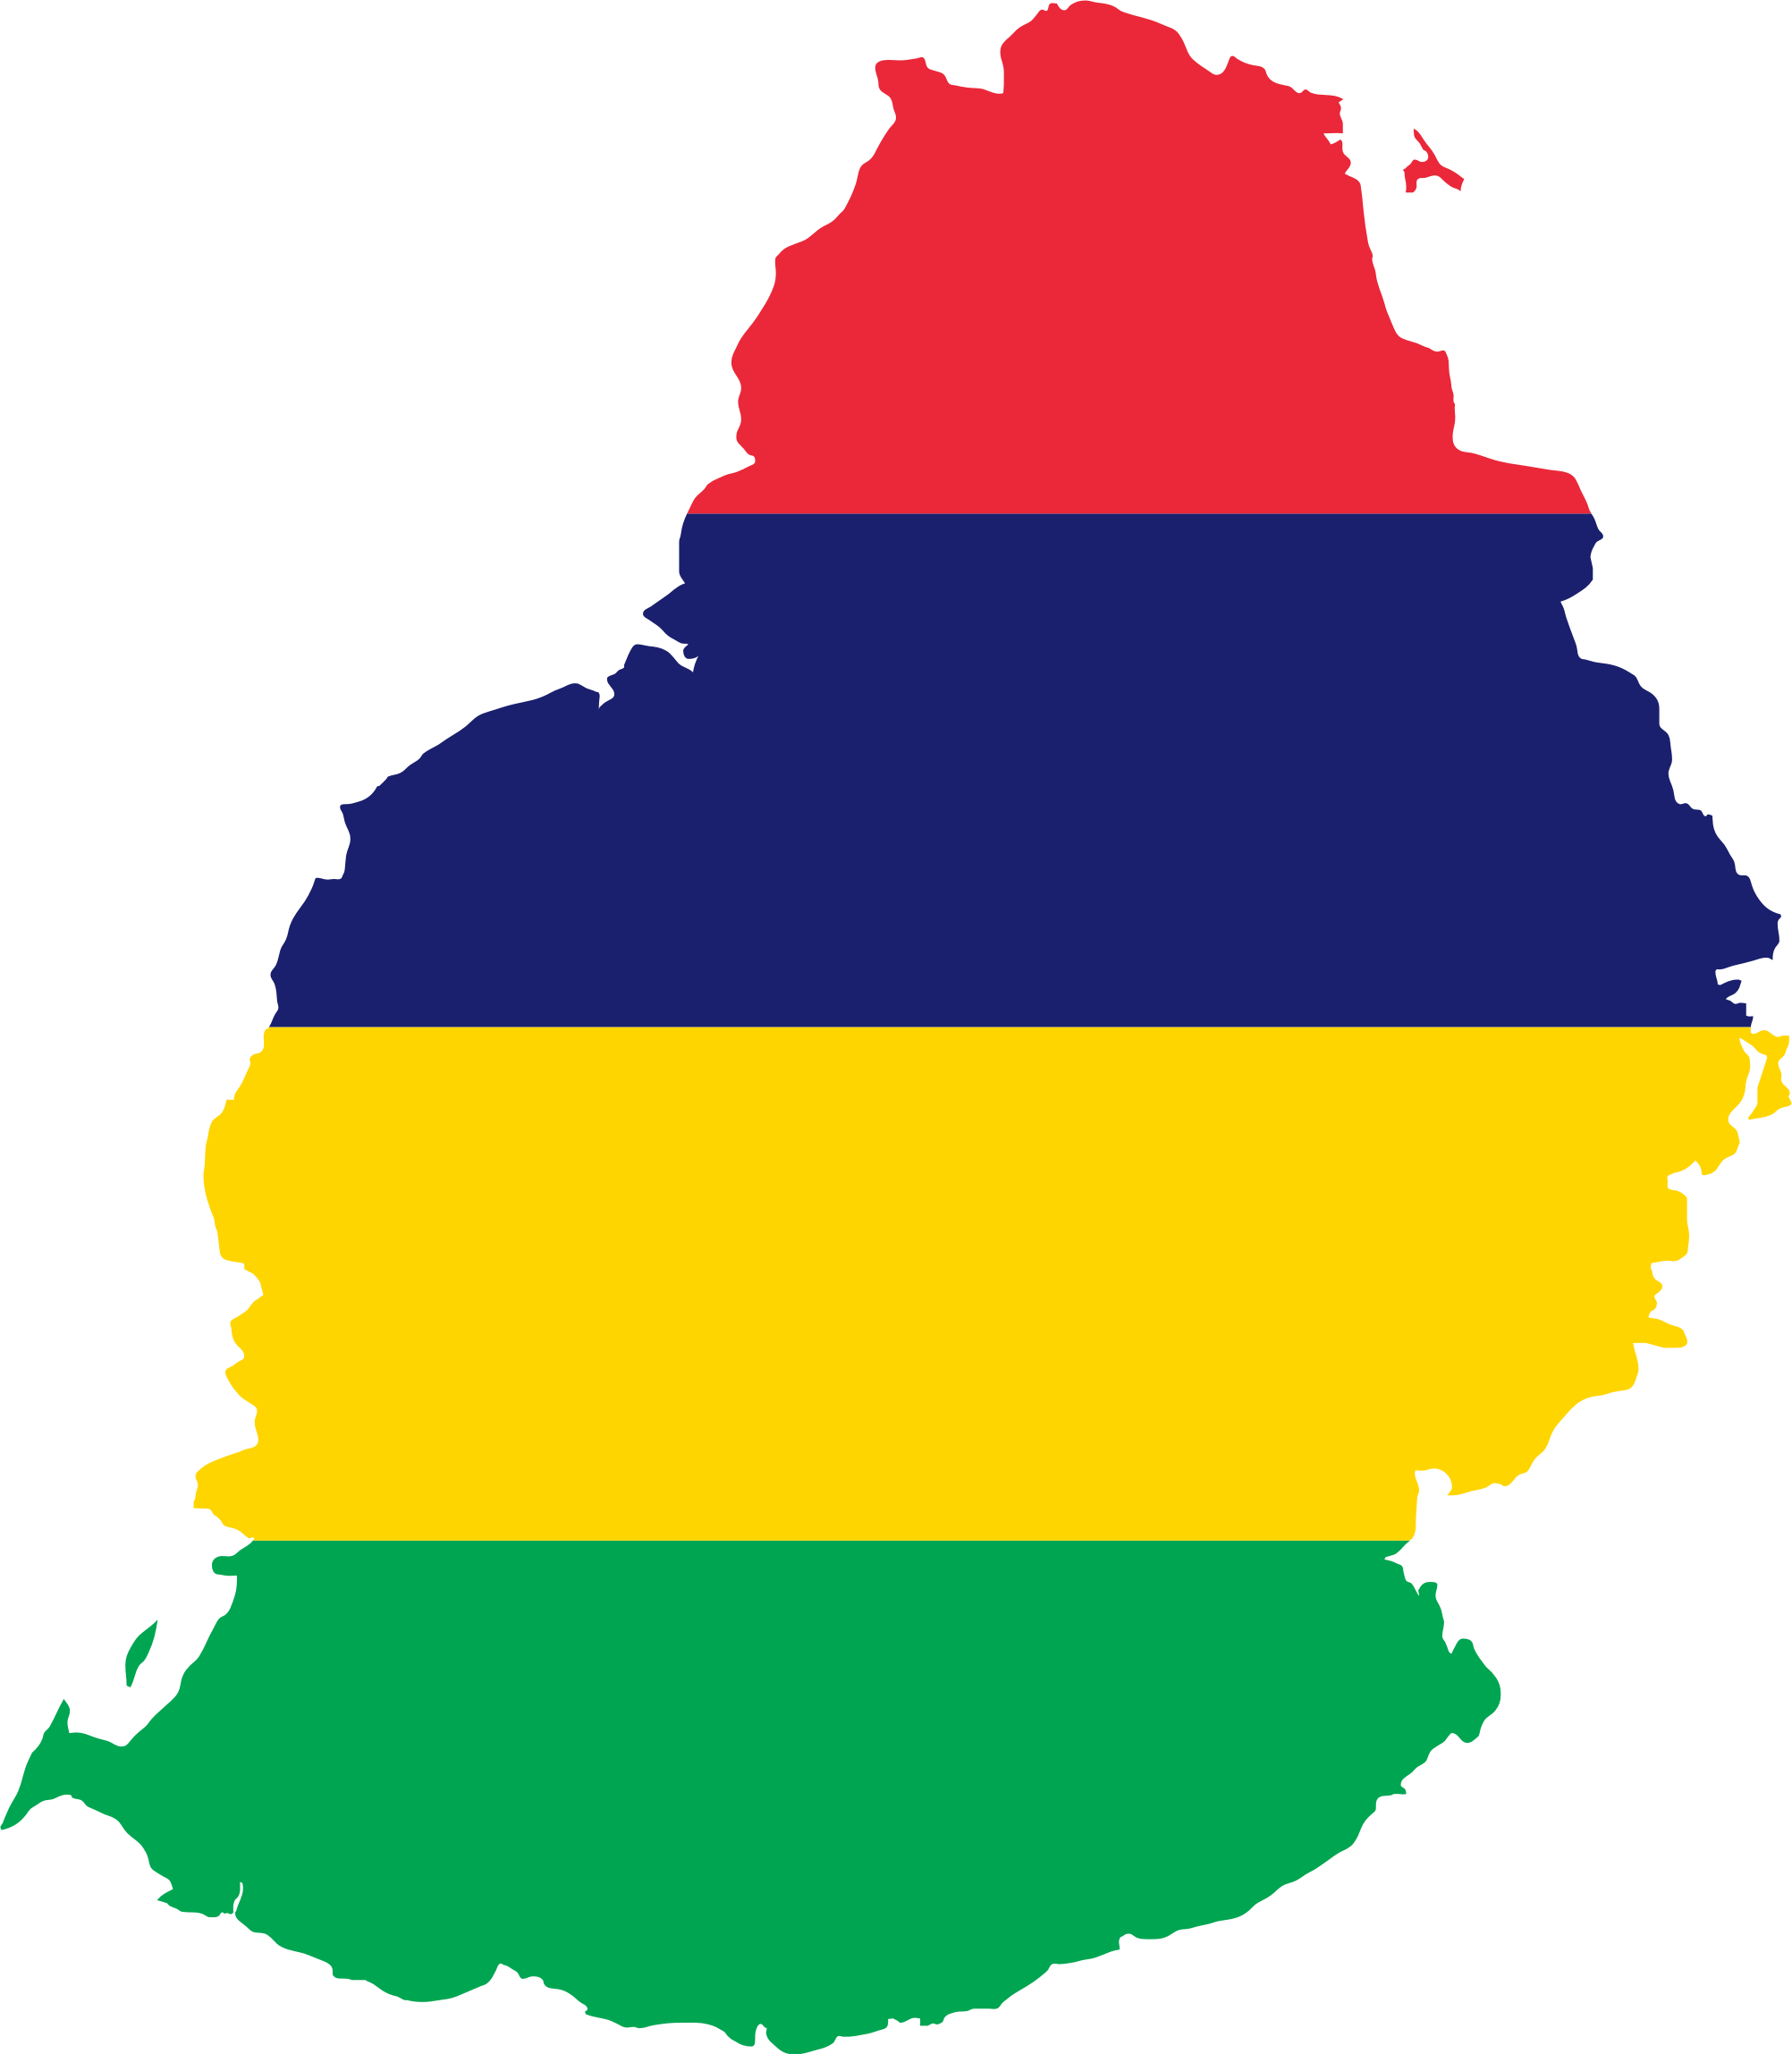 Mauritius Flag and Description